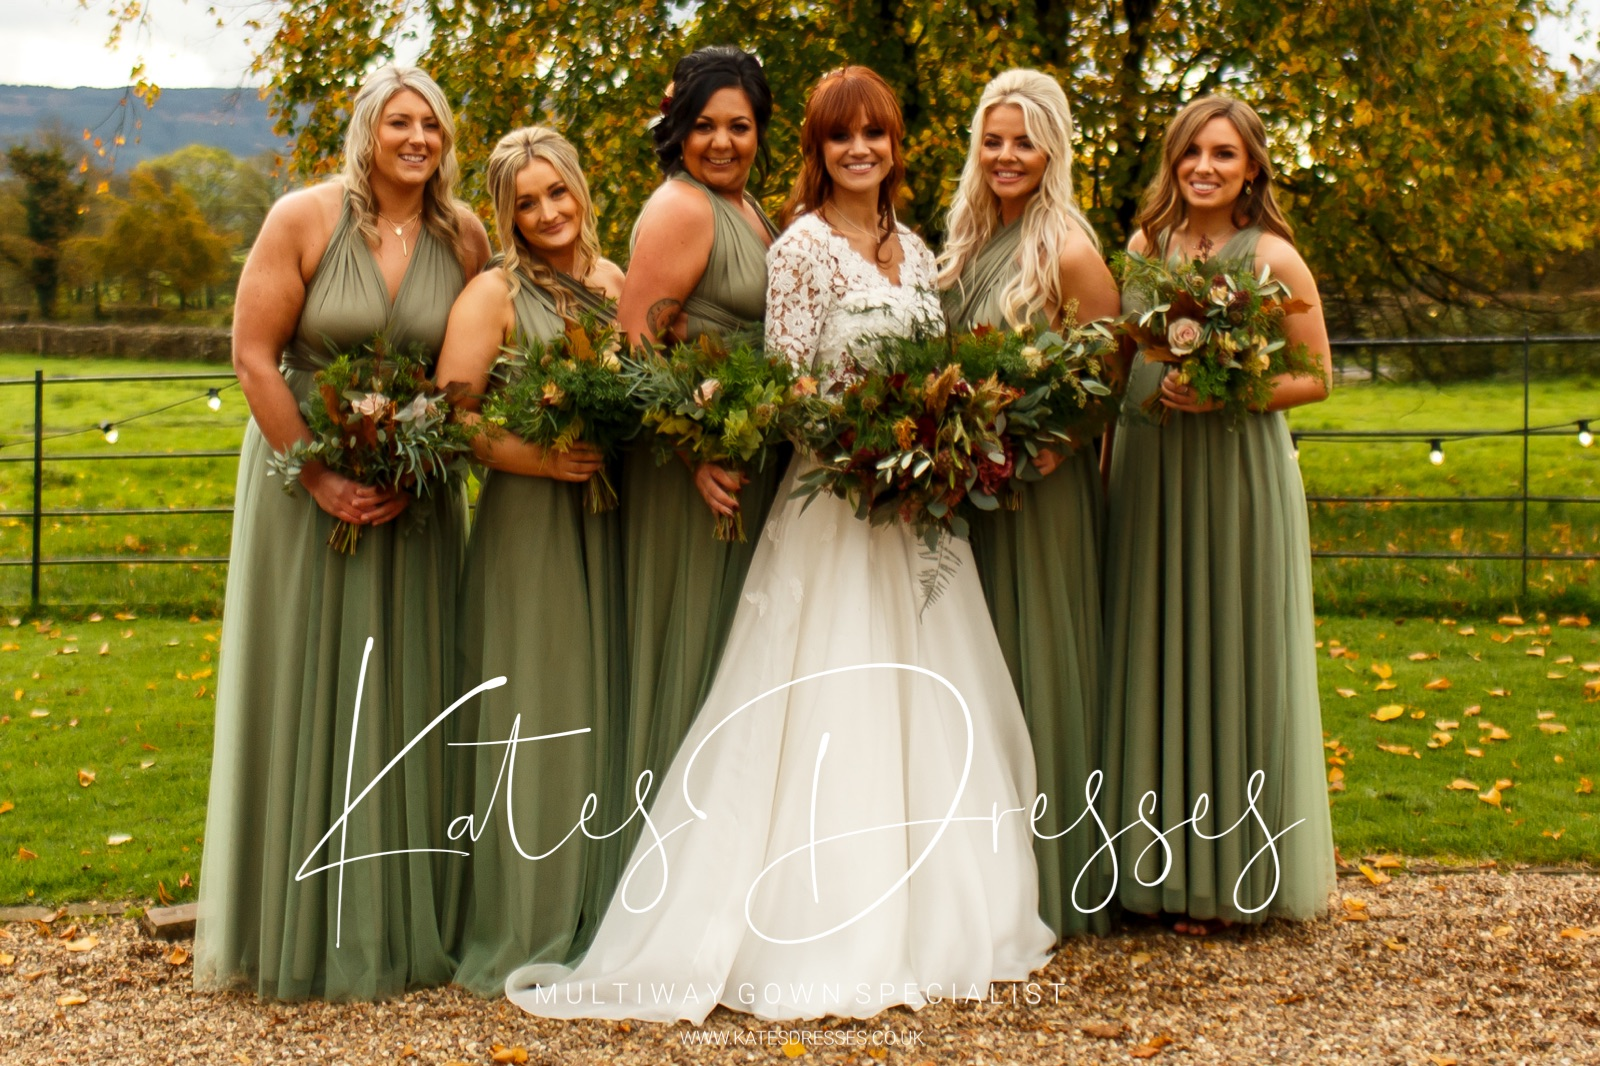 Top tips that will make buying your bridesmaid gowns stress-free